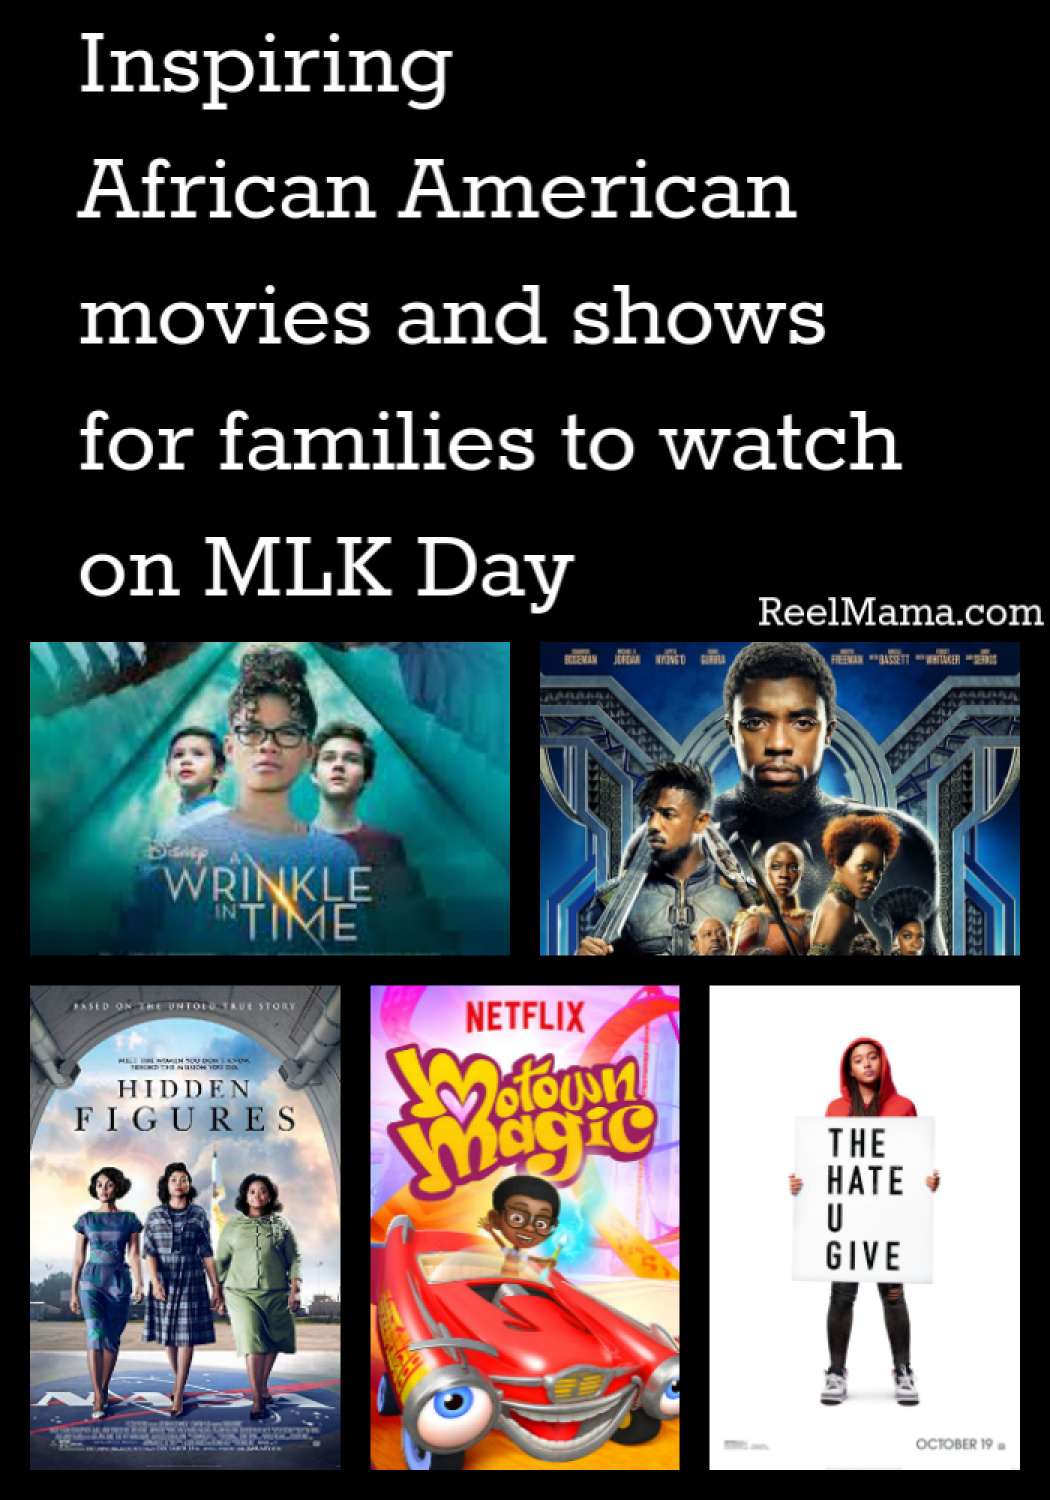 Inspiring African American movies and shows for families